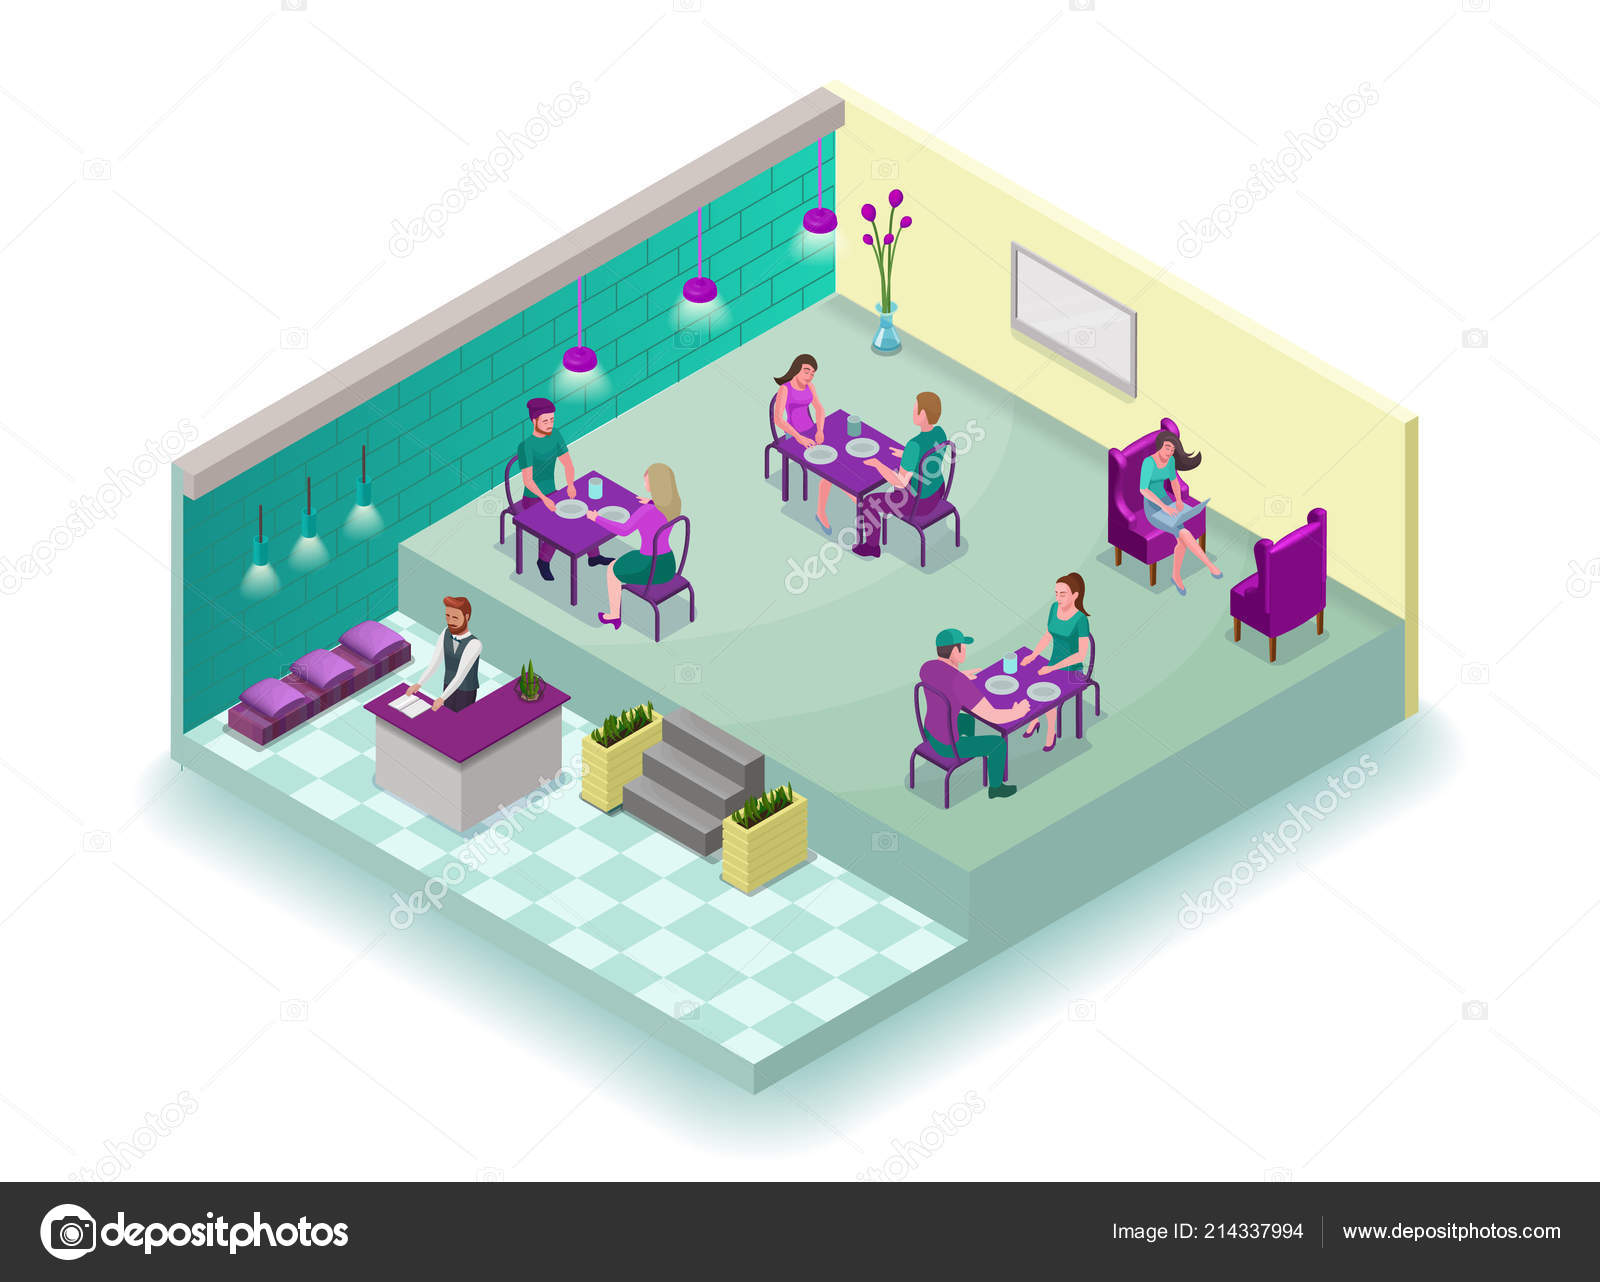 Isometric Cafe Interior With People 3d Concept Of Modern Restaurant With Visitors Having Food Reception Sofa Table Vector Illustration Stock Vector C Nadine C 214337994